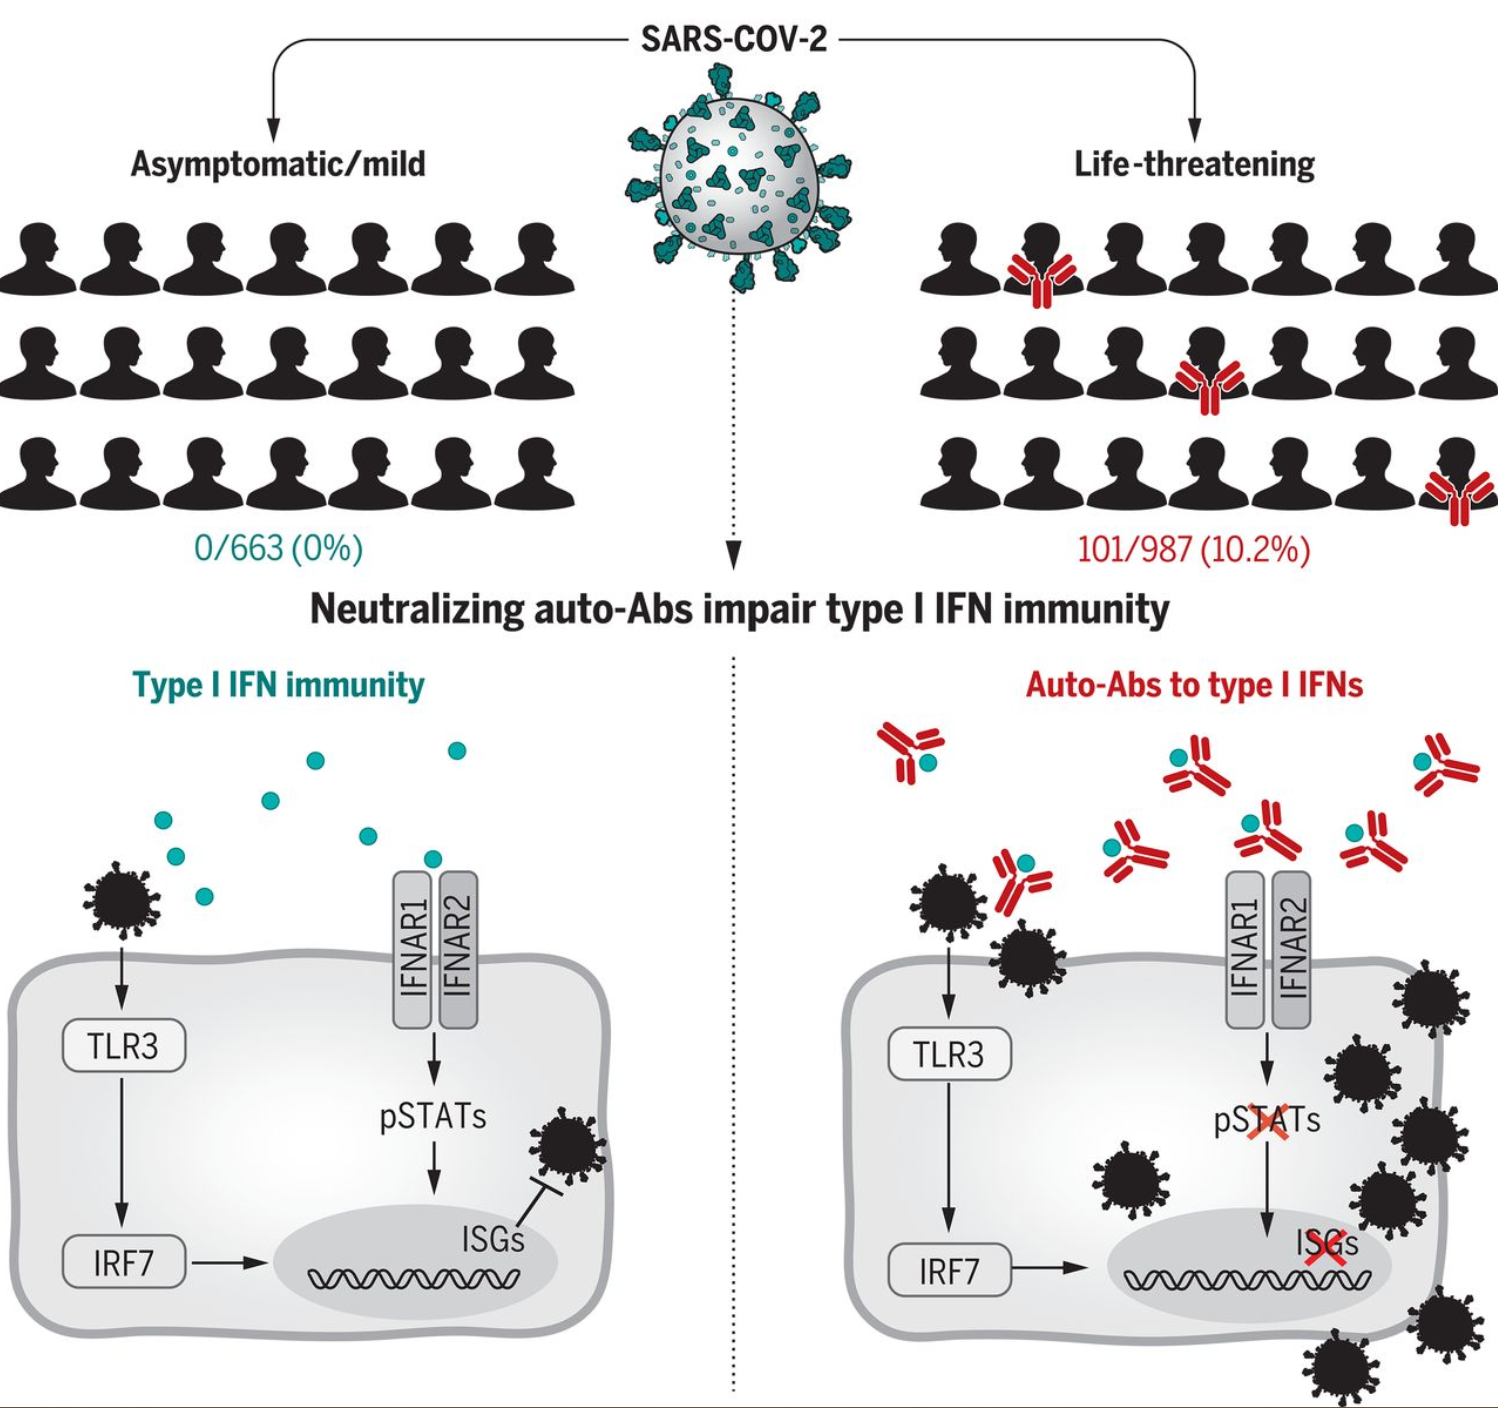 https://smart119.biz/covid-19/images/Autoantibodies%20against%20type%20I%20IFNs%20in%20patients%20with%20life-threatening%20COVID-19.png